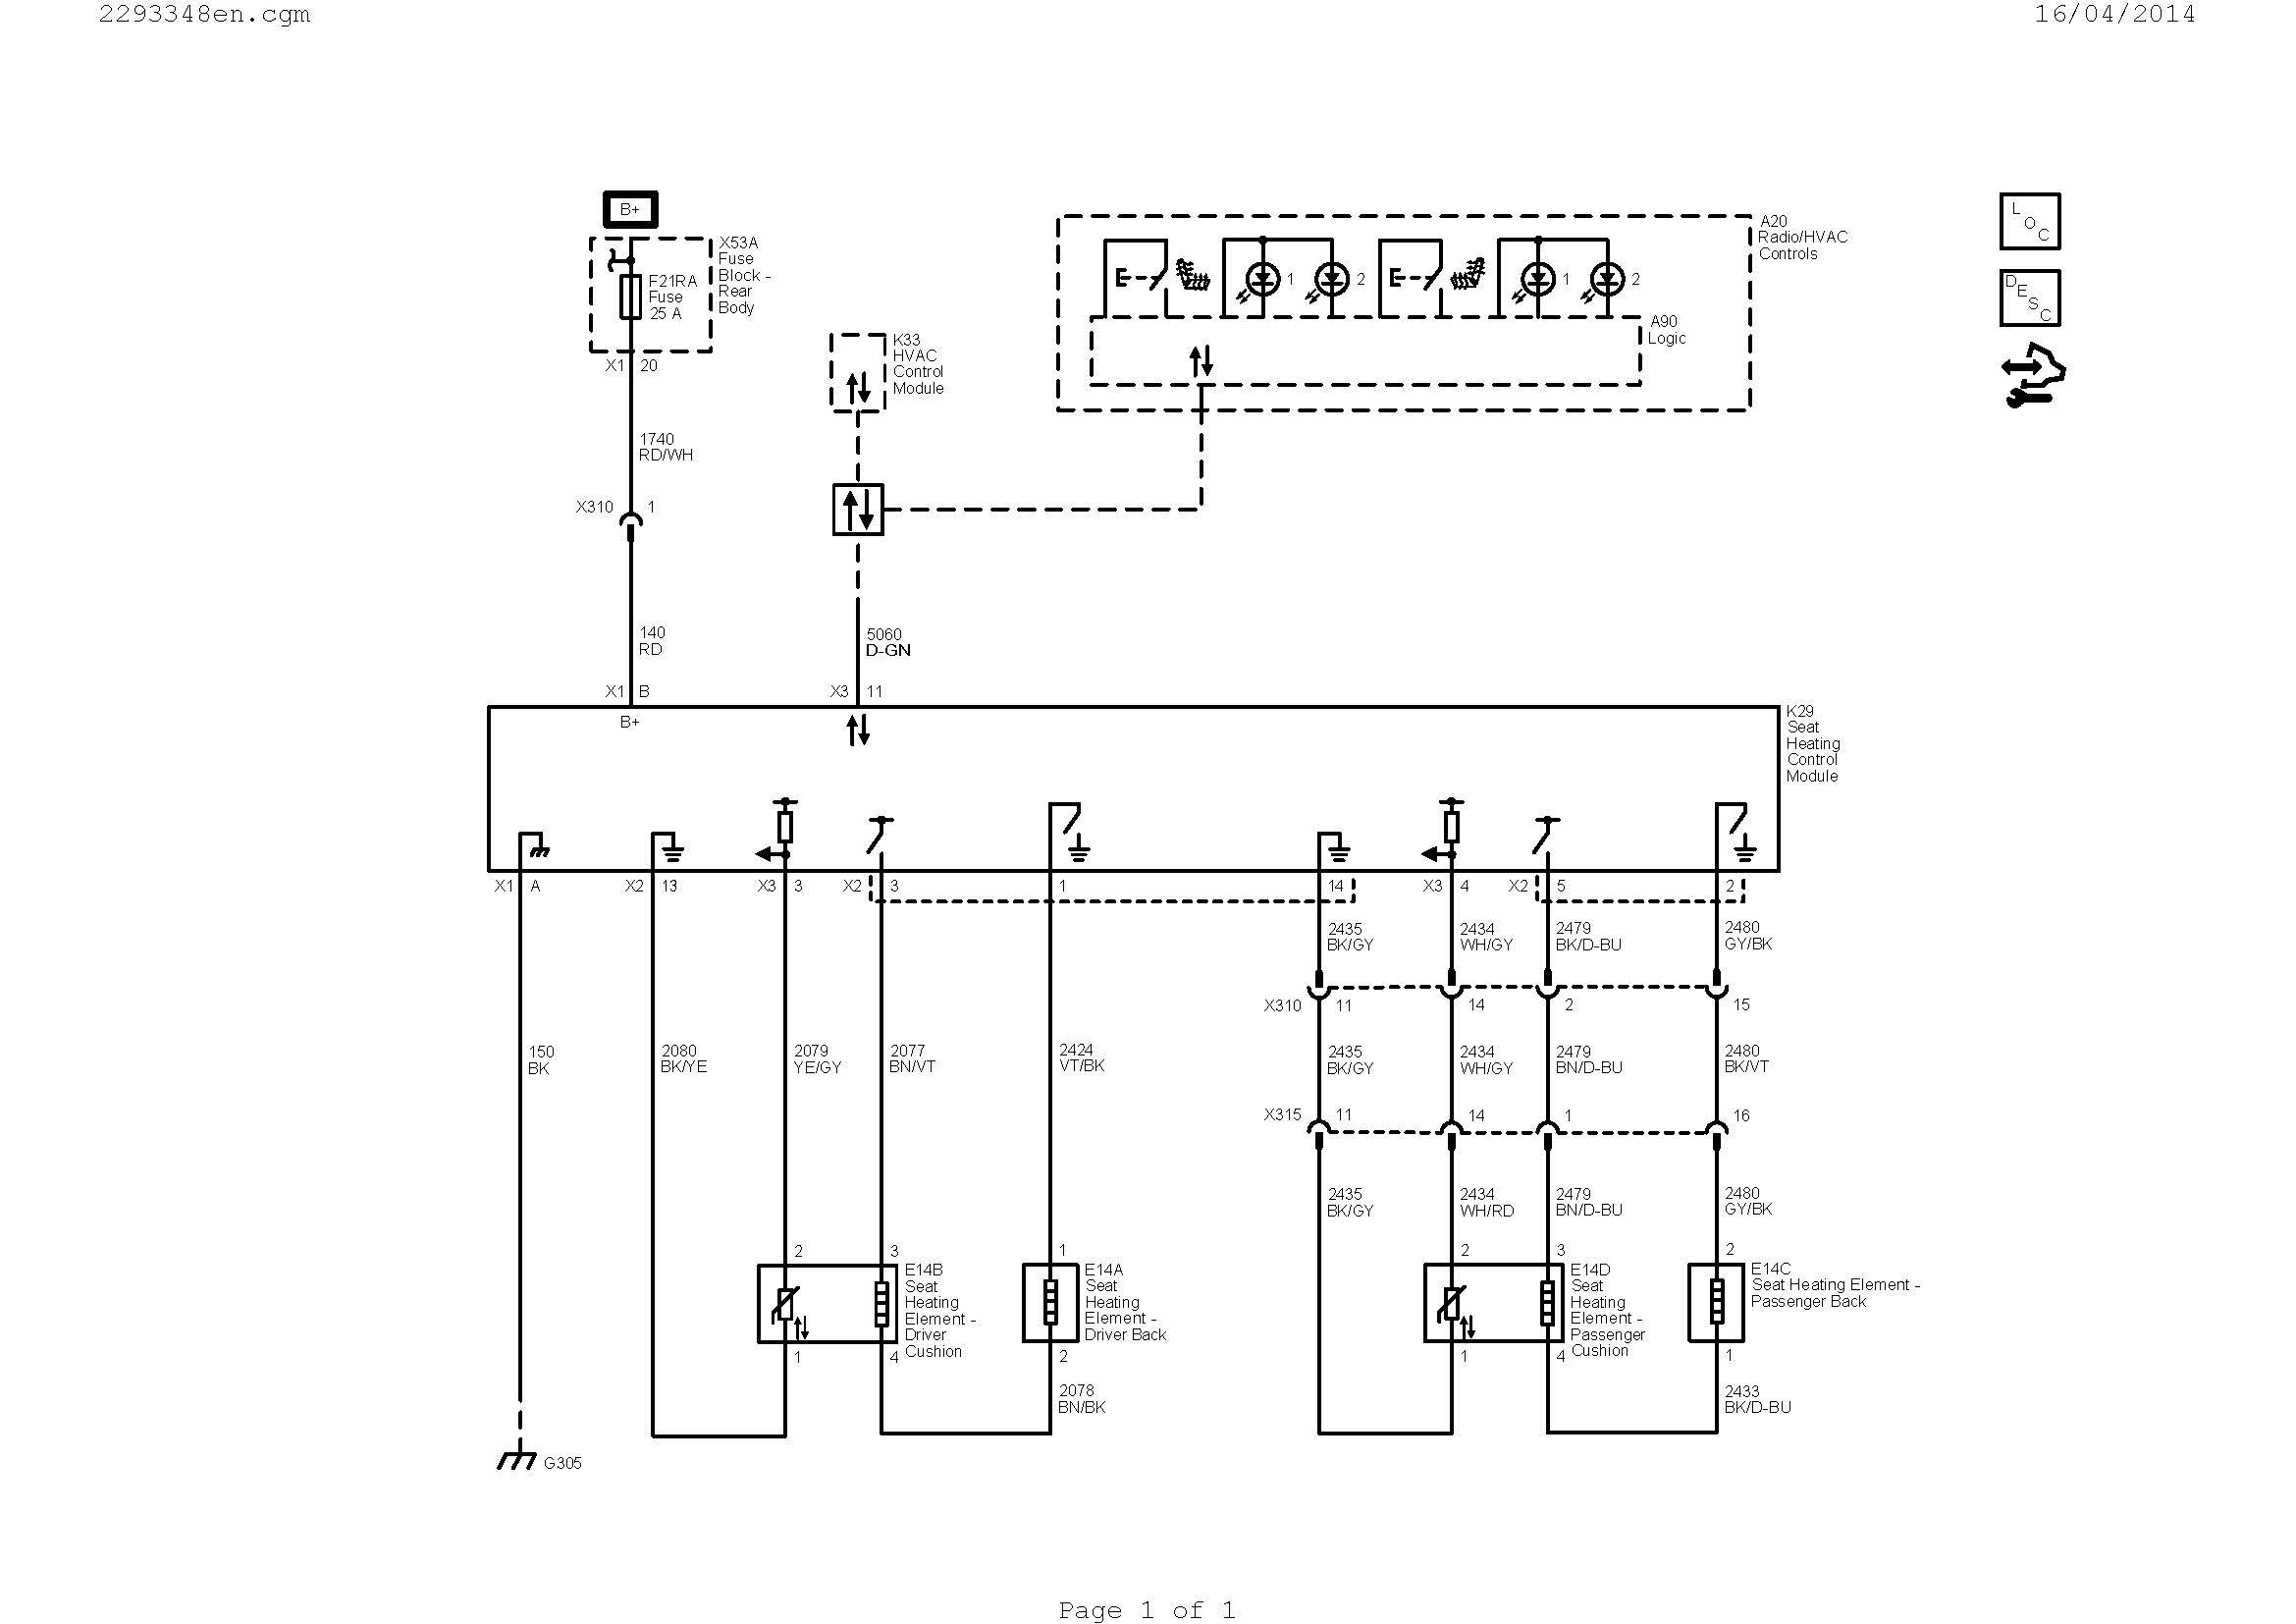 gas furnace wiring diagram Collection-Gas Fired Furnace Wiring Diagram Inspirationa tower Ac Wiring Diagram New Hvac Diagram Best Hvac Diagram 18-b